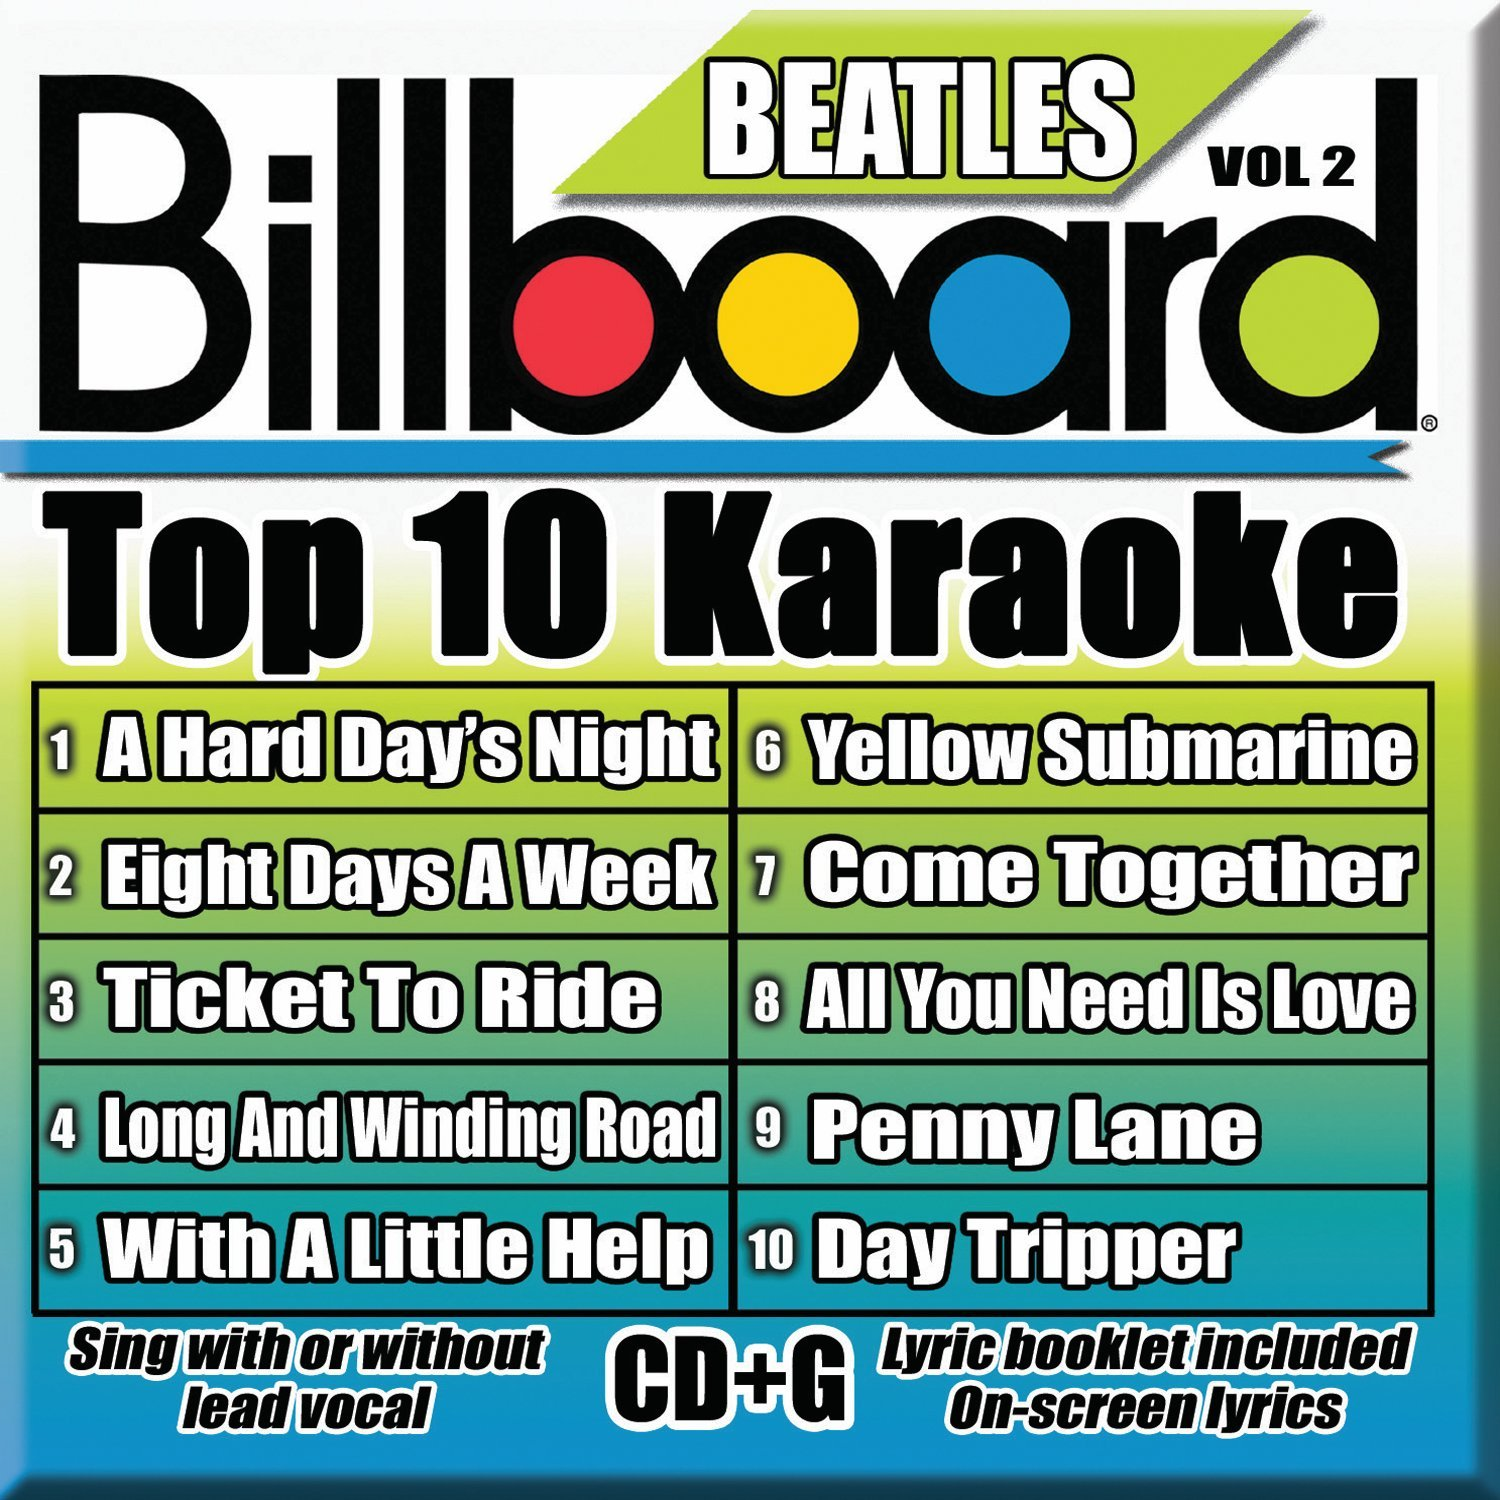 Billboard Karaoke - Billboard Beatles Top 10 Karaoke Vol 2 [10+10-song CD+G] by Sybersound